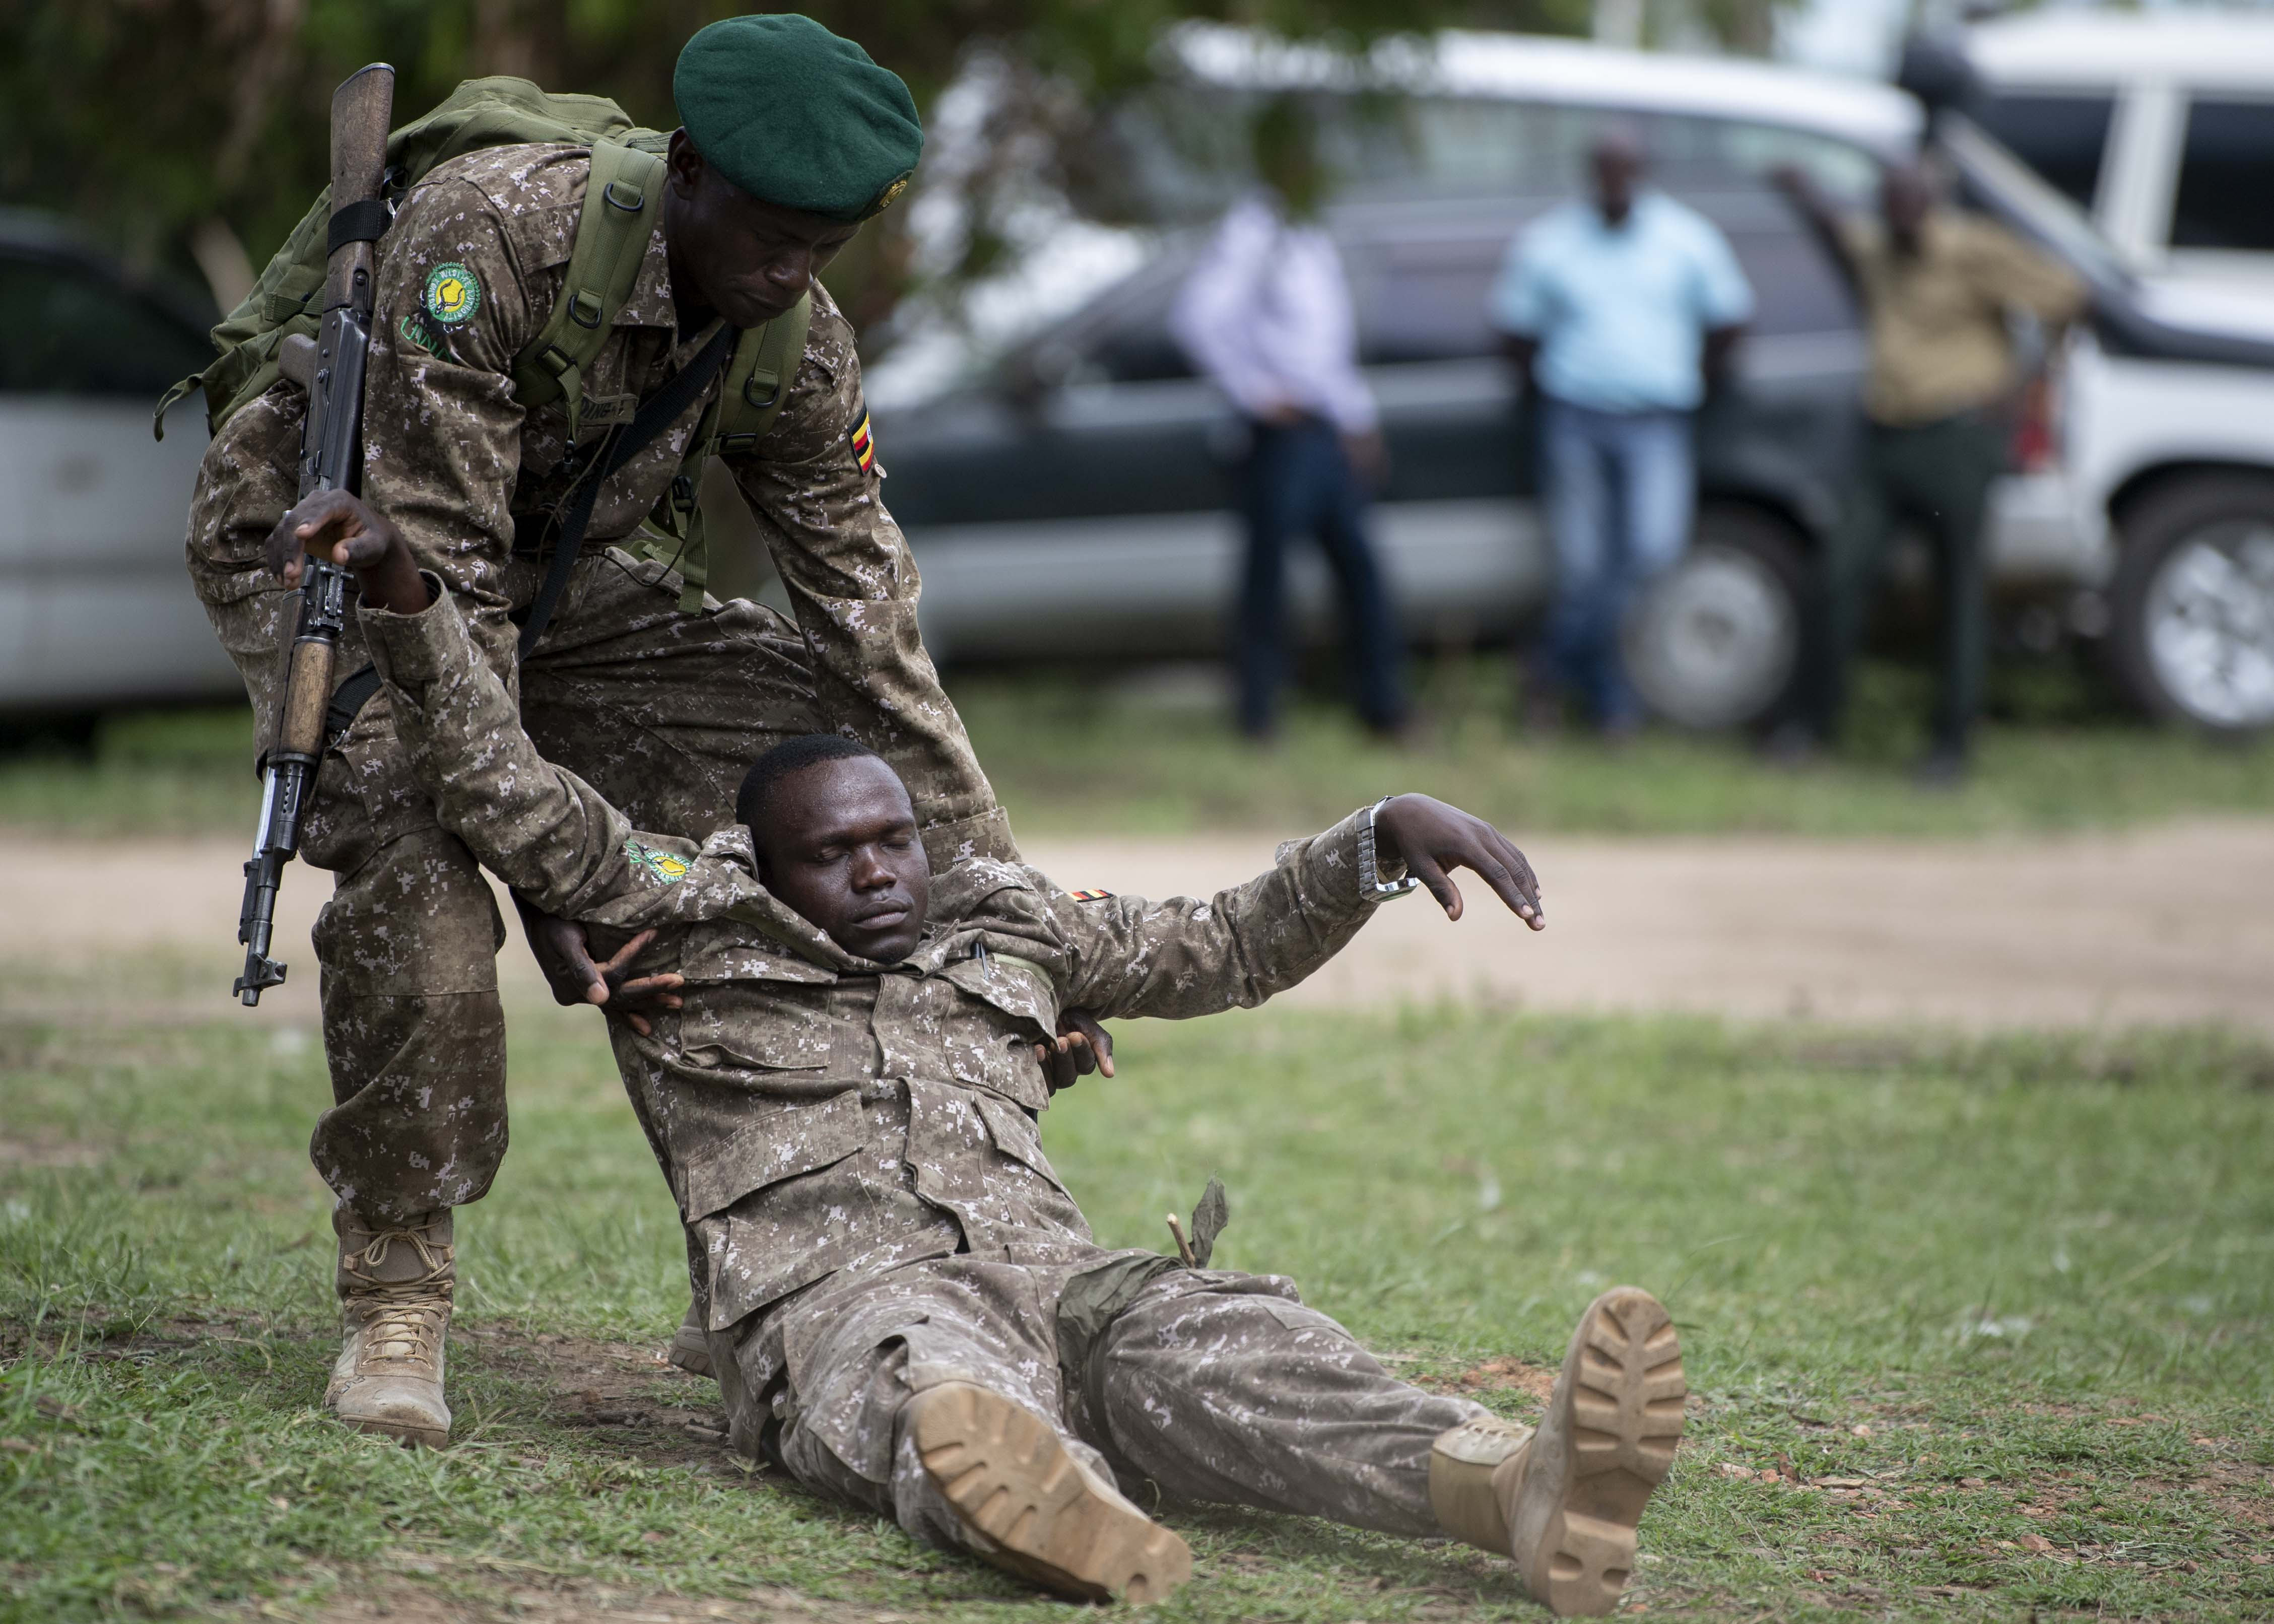 A Uganda Wildlife Authority (UWA) Ranger drags his fellow Ranger from mock danger before performing casualty care during a Counter Illicit Trafficking Junior Leadership Course graduation demonstration at Queen Elizabeth Park, Uganda, Oct. 10, 2019. Twenty-five UWA Rangers graduated the course. (U.S. Air Force photo by Staff Sgt. J.D. Strong II)